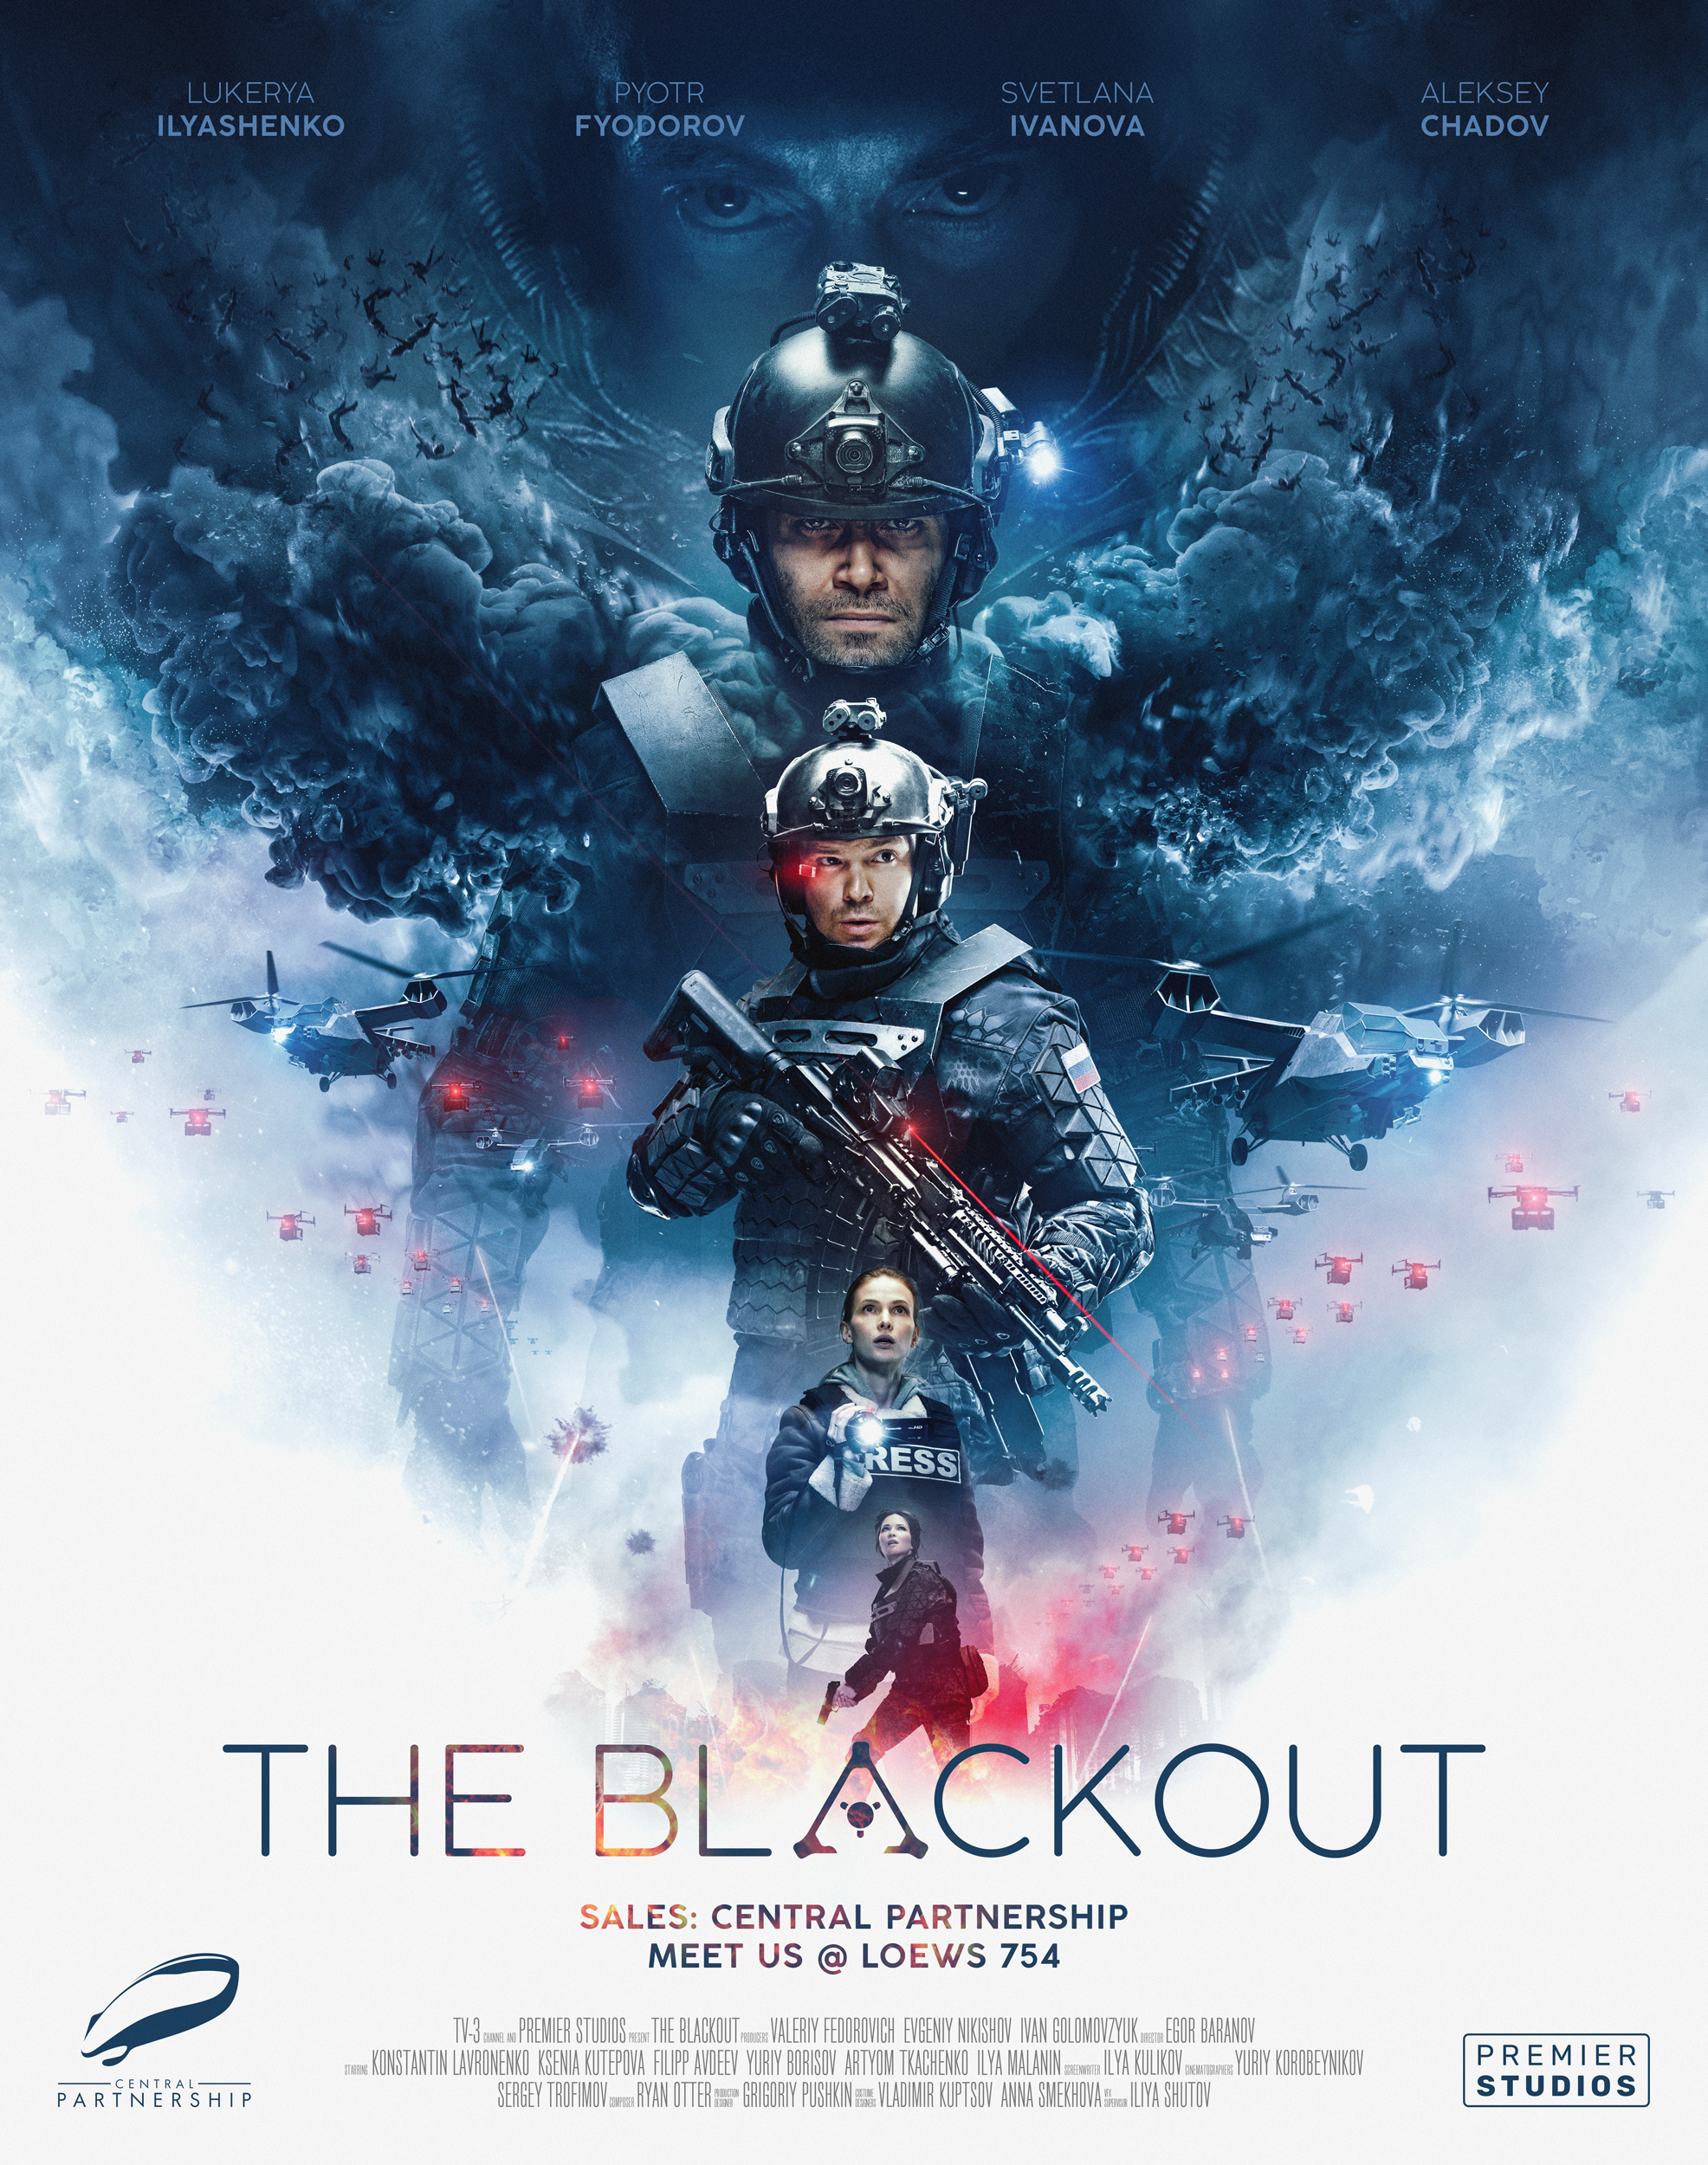 Stiahni si Filmy s titulkama The Blackout/Avanpost (2019)[BDRip][1080p] = CSFD 63%